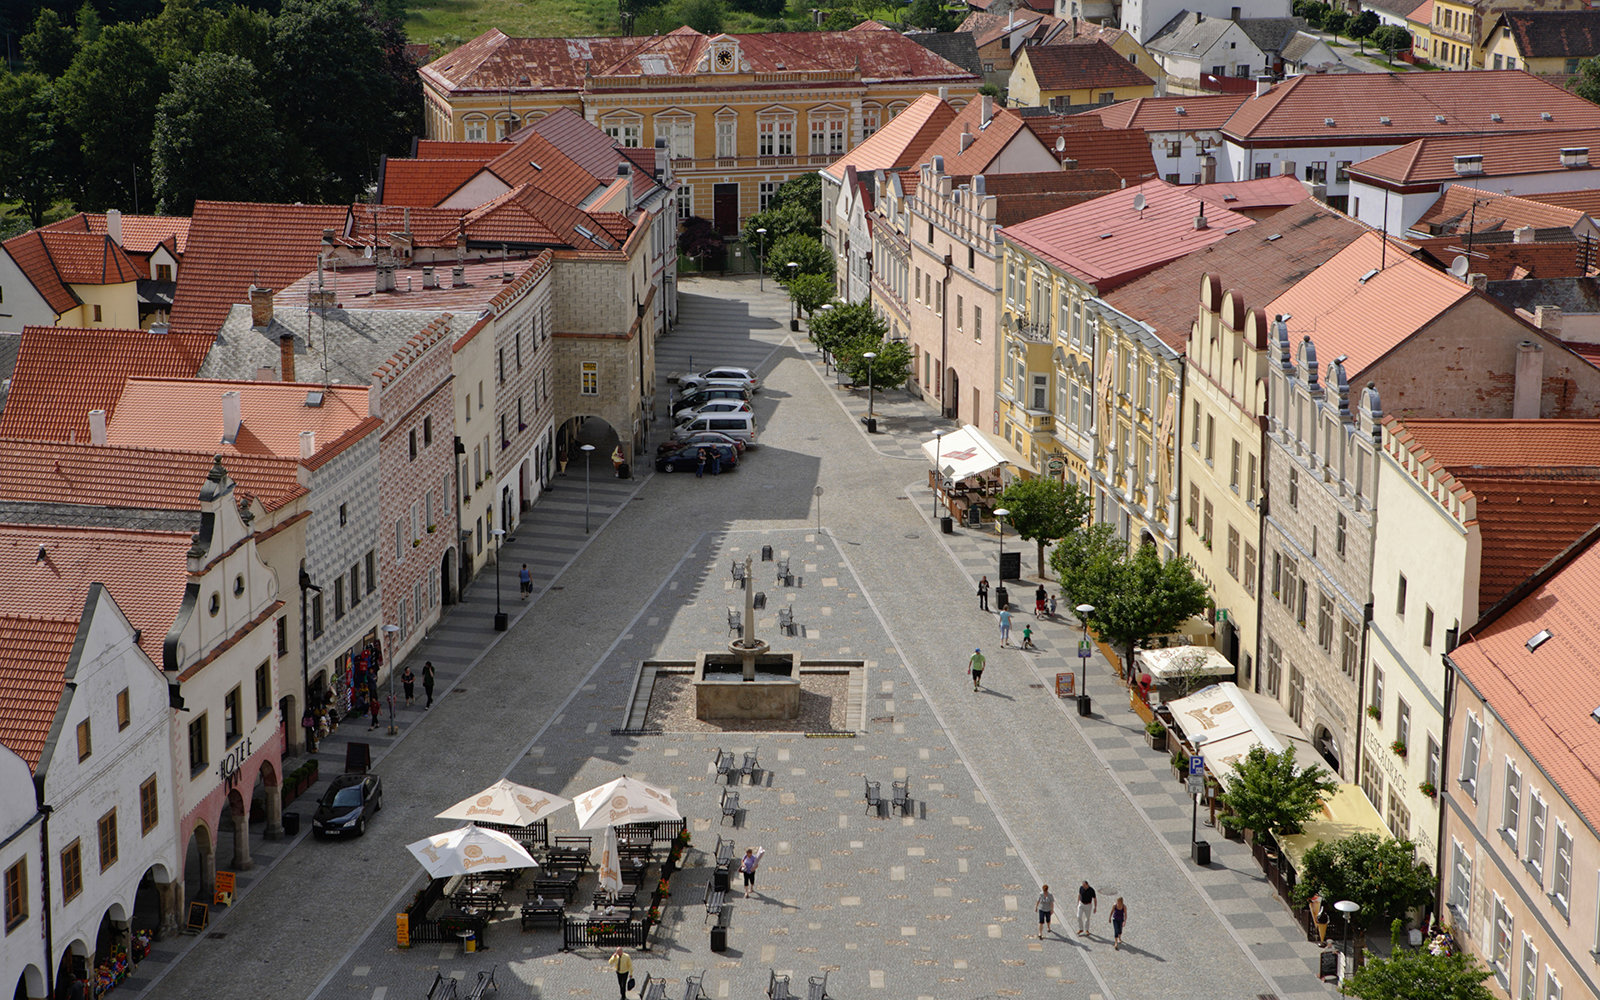 town square in Slavonice, Czech Republic